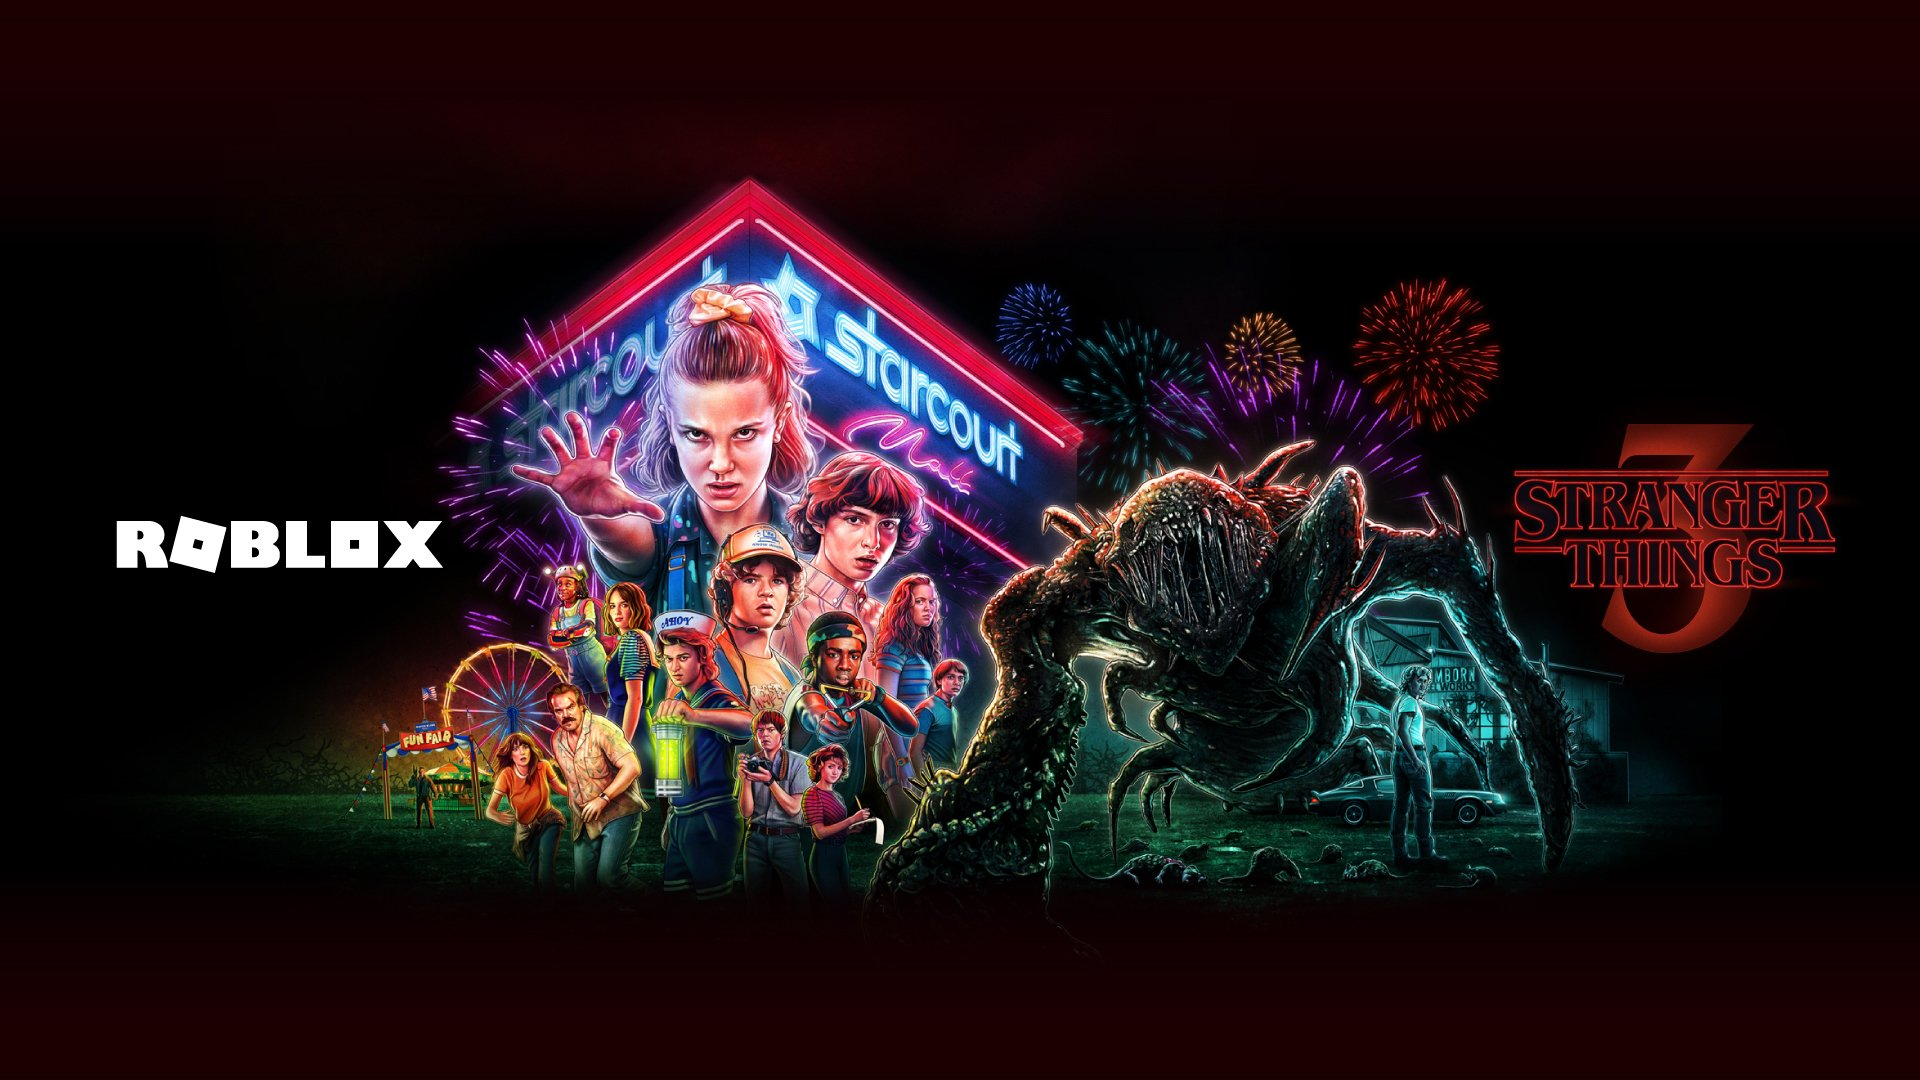 Roblox Celebrates Stranger Things 3 With Special In-Game Items